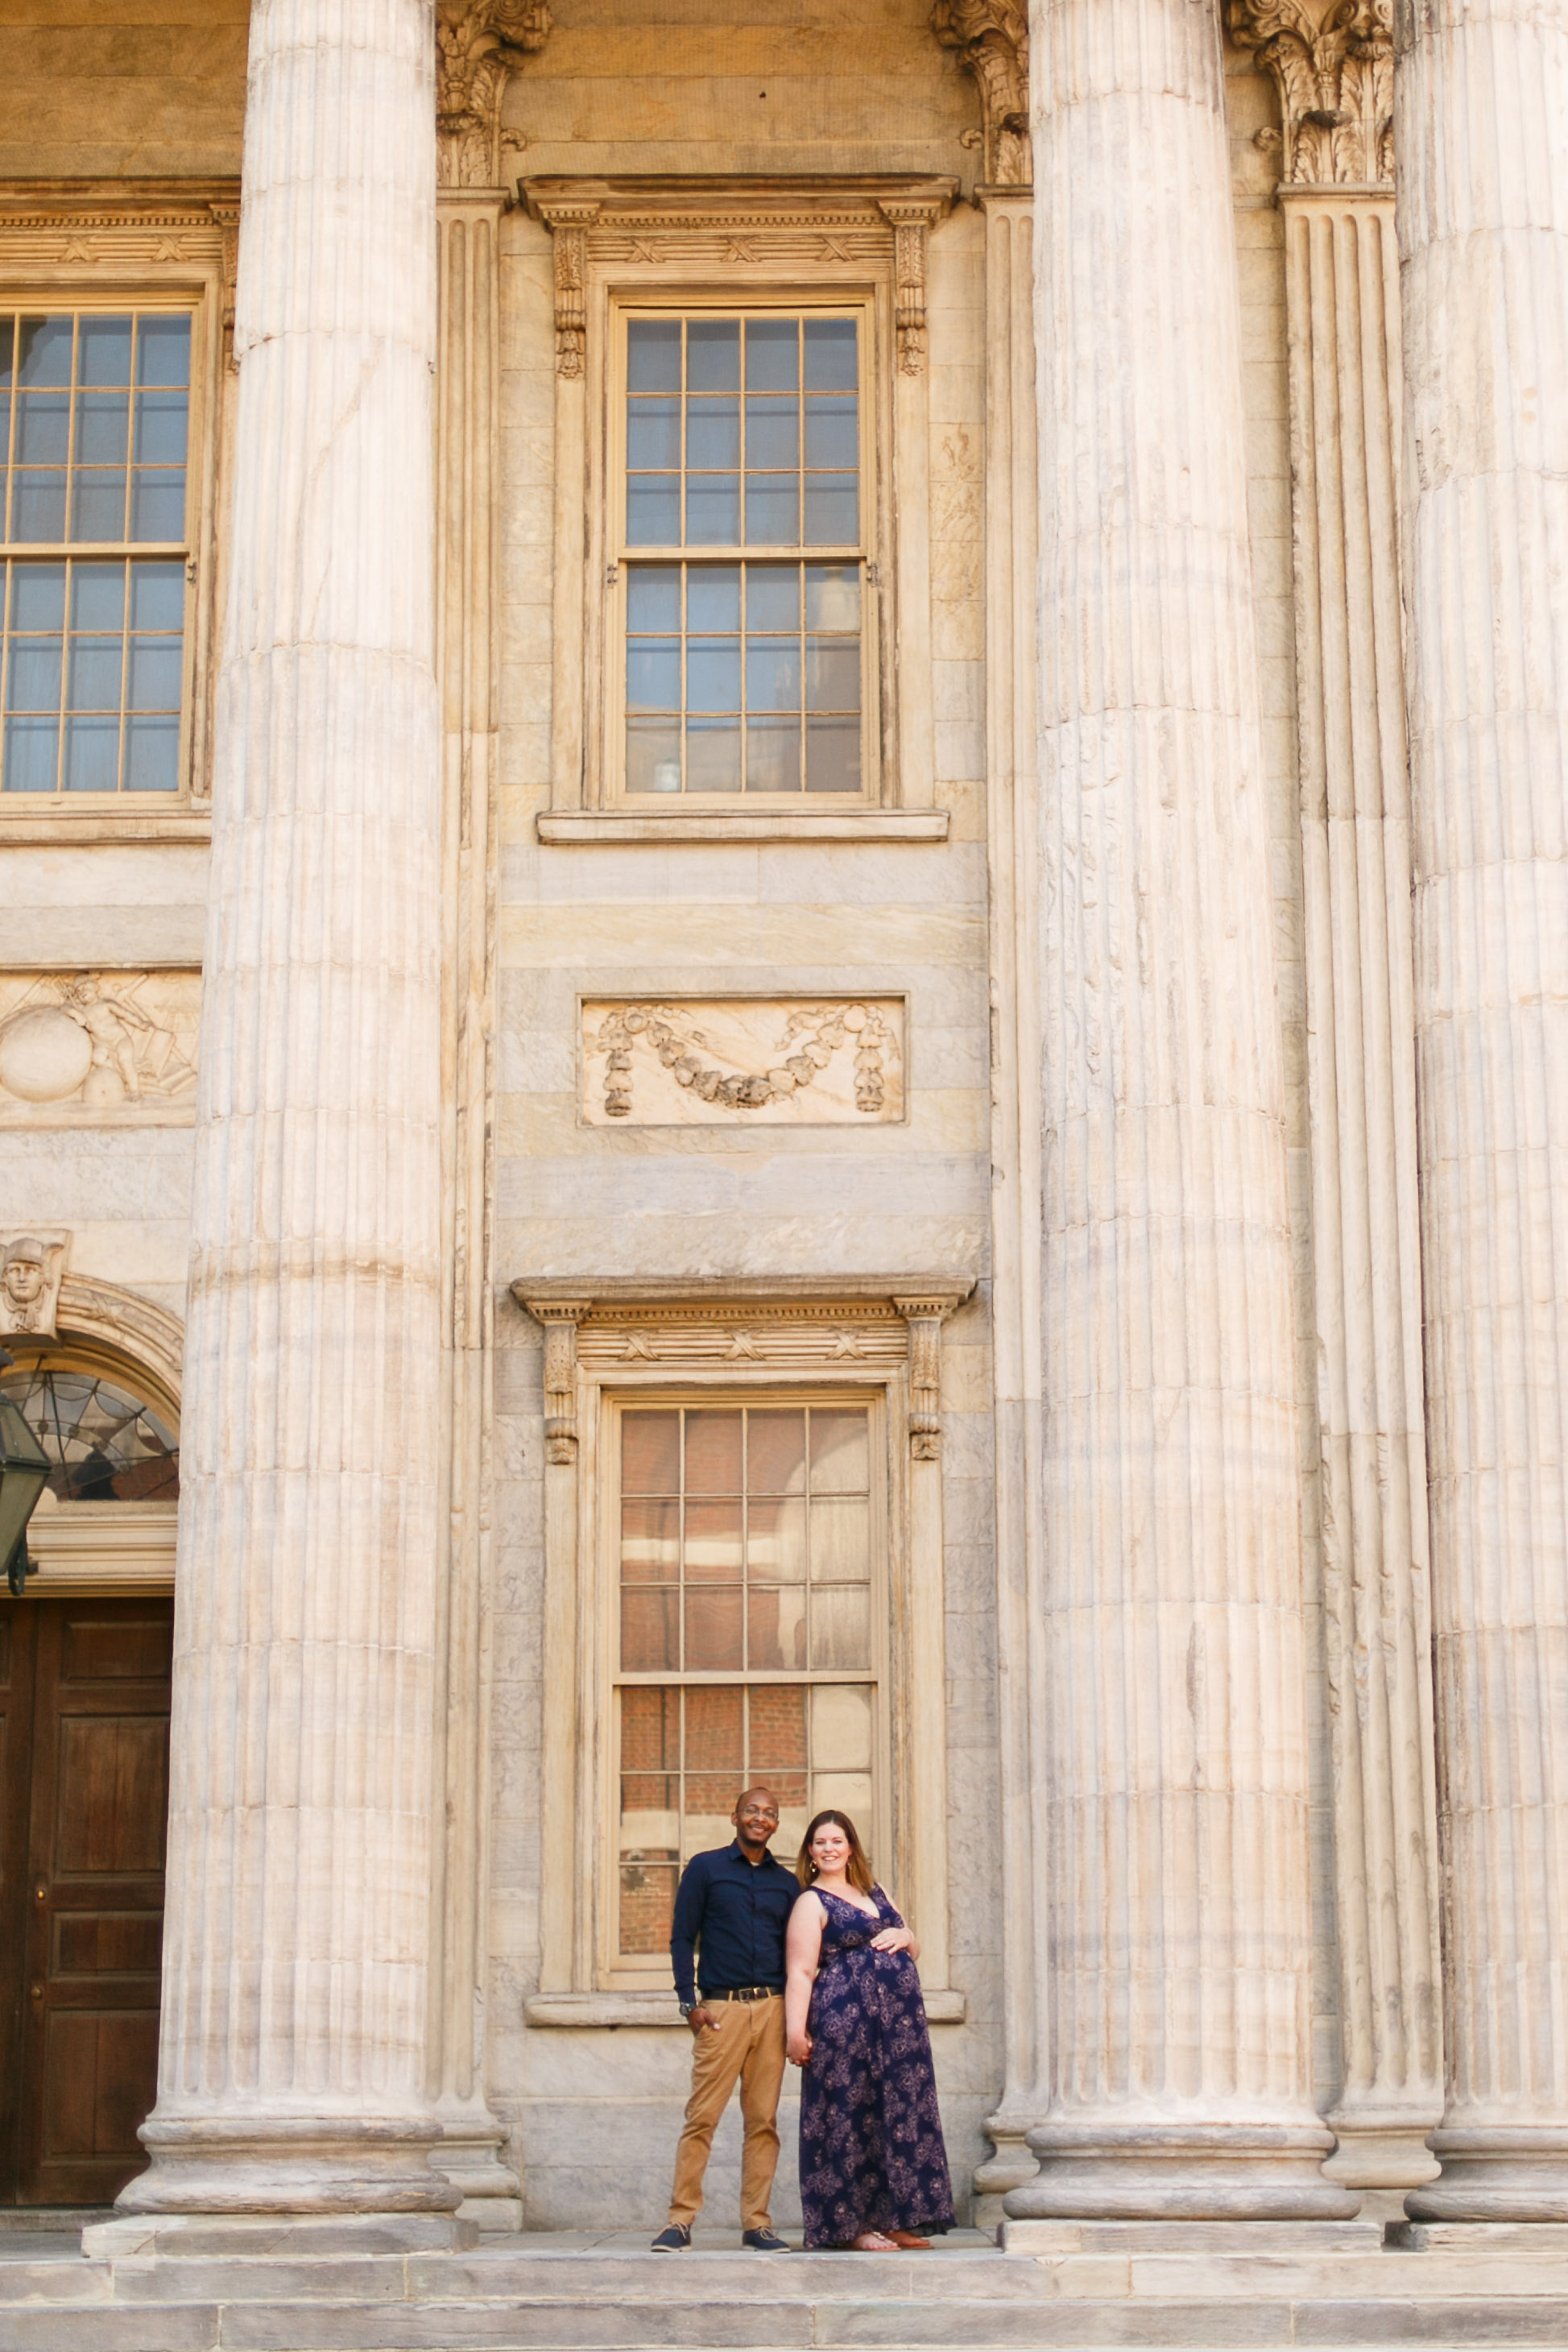 Amanda Old City Philadelphia Maternity Session-111.jpg